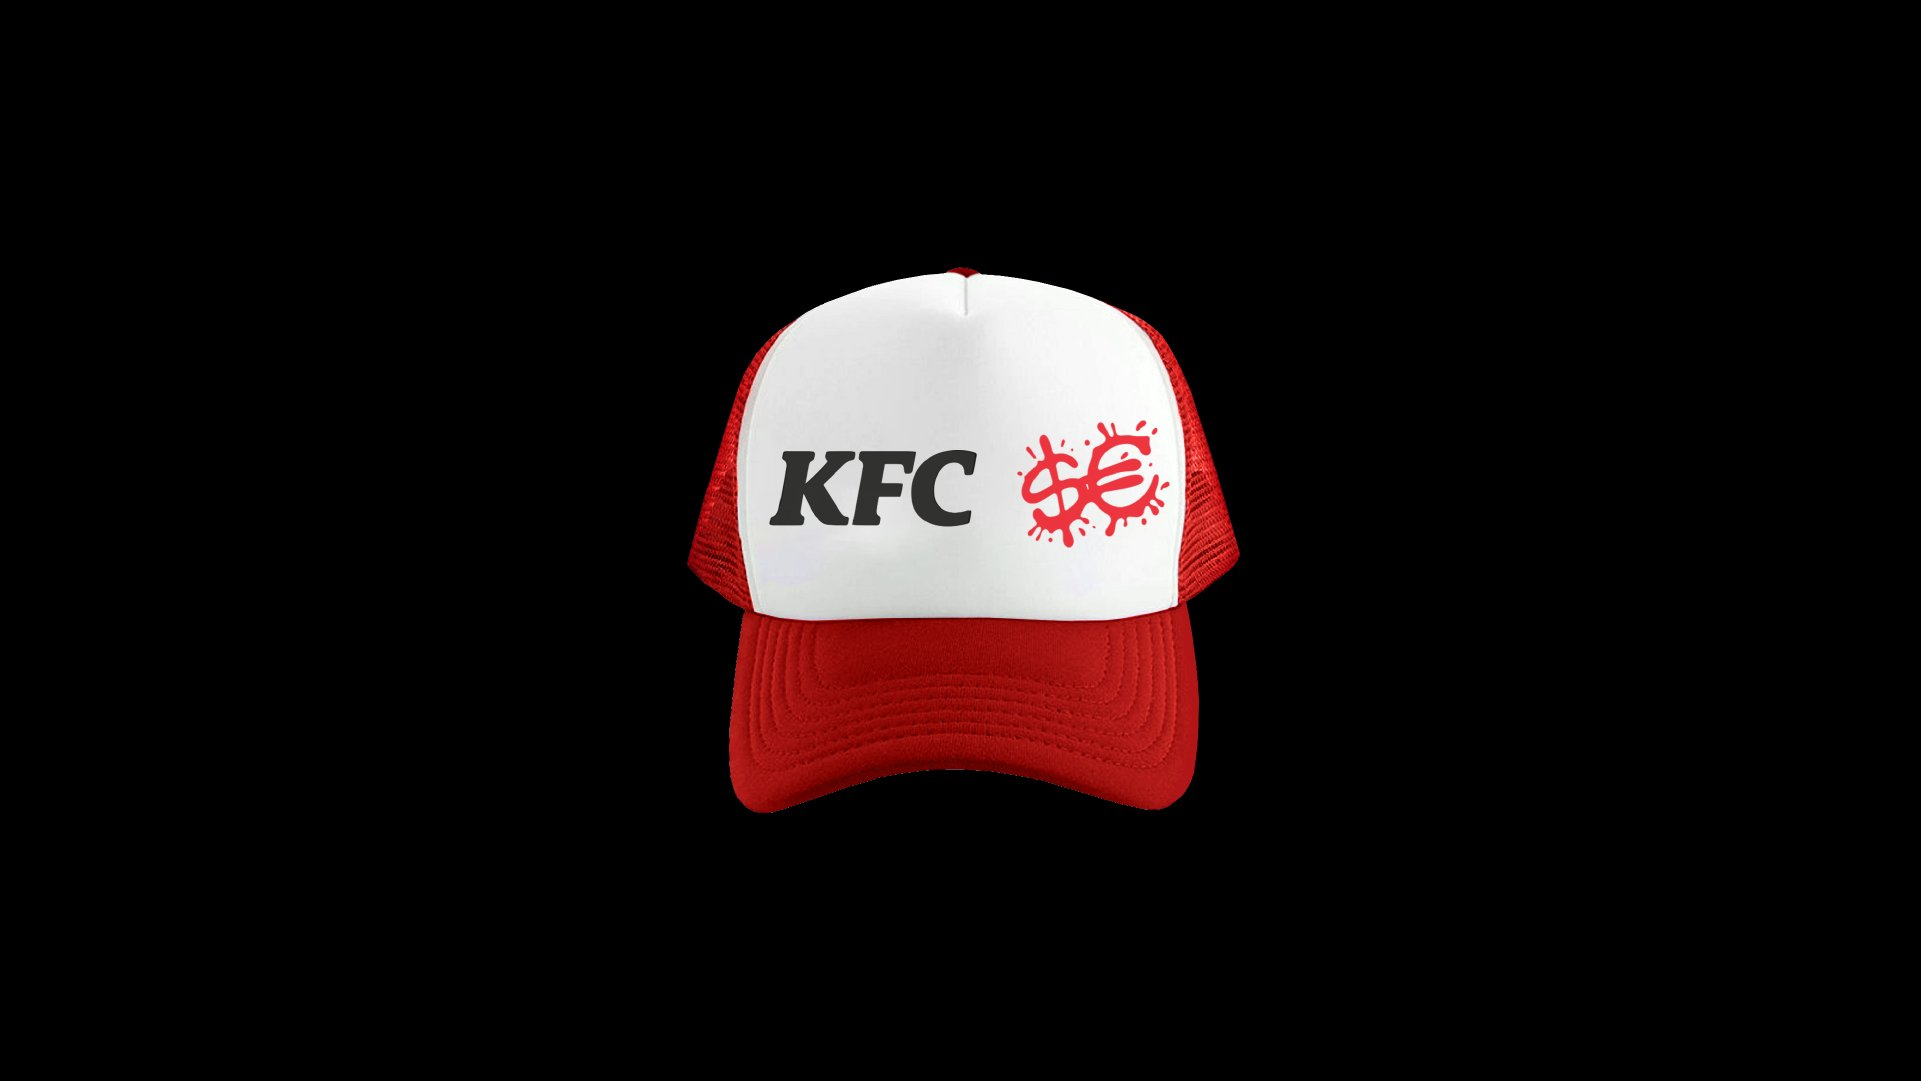 SFERA KFC MERCH 2020 hat 01